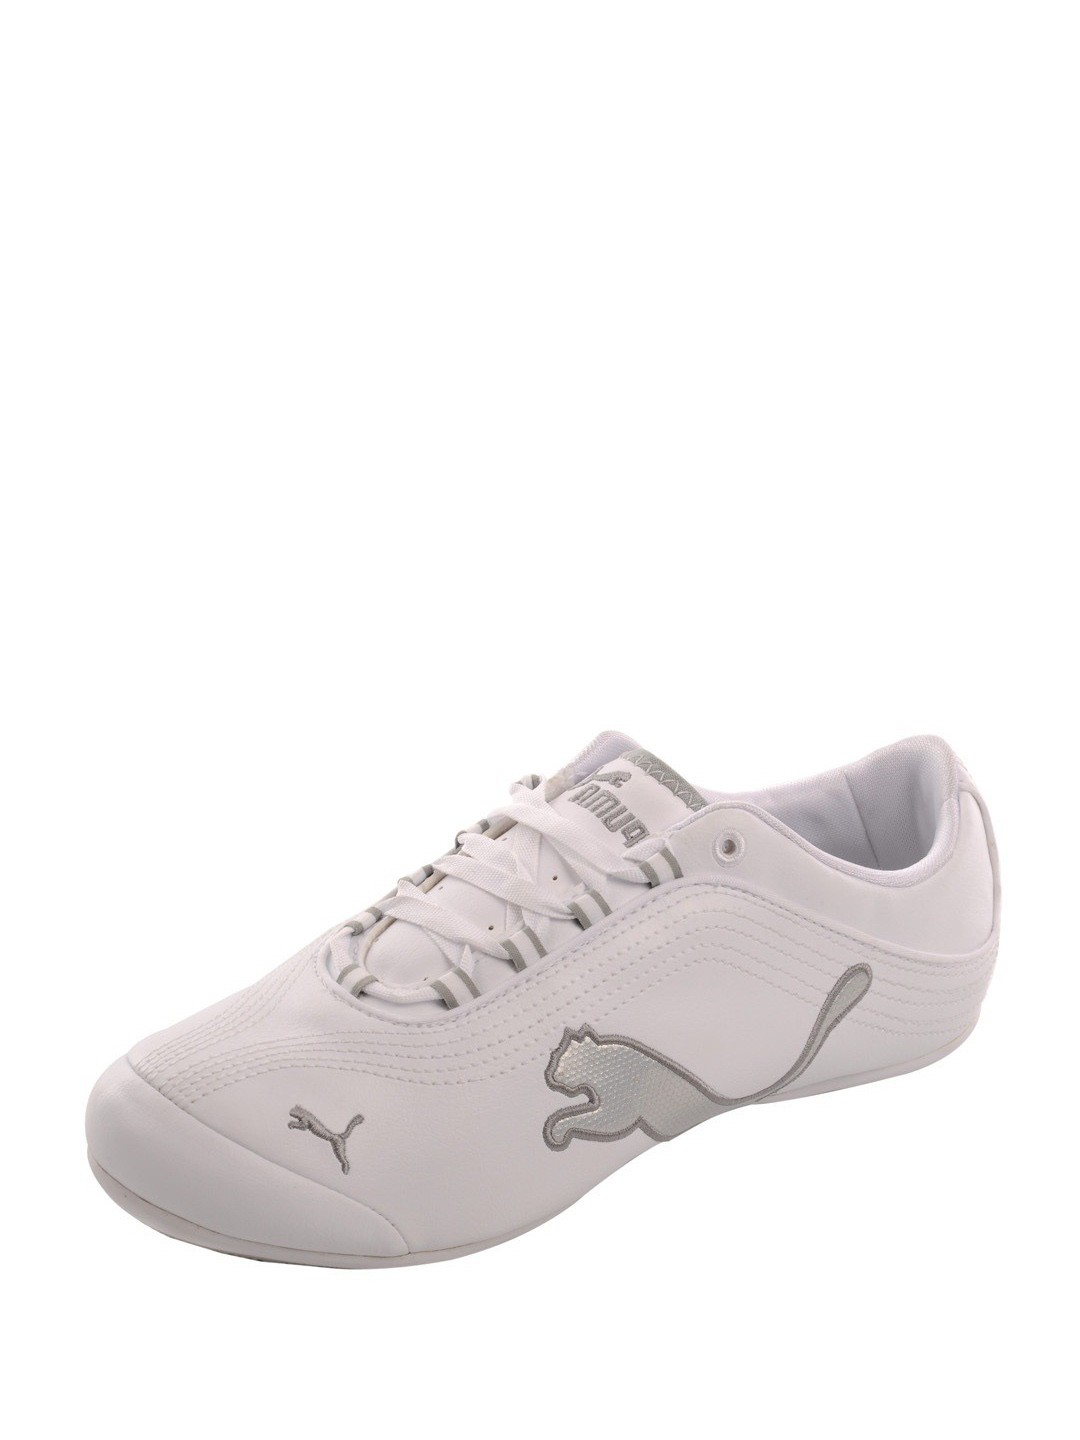 Buy Puma Women Shoes online in India. Find the latest collection of Puma Running, Training and Sports Shoes for Women @ upto 70% off on wheelpokemon7nk.cf COD 15 .